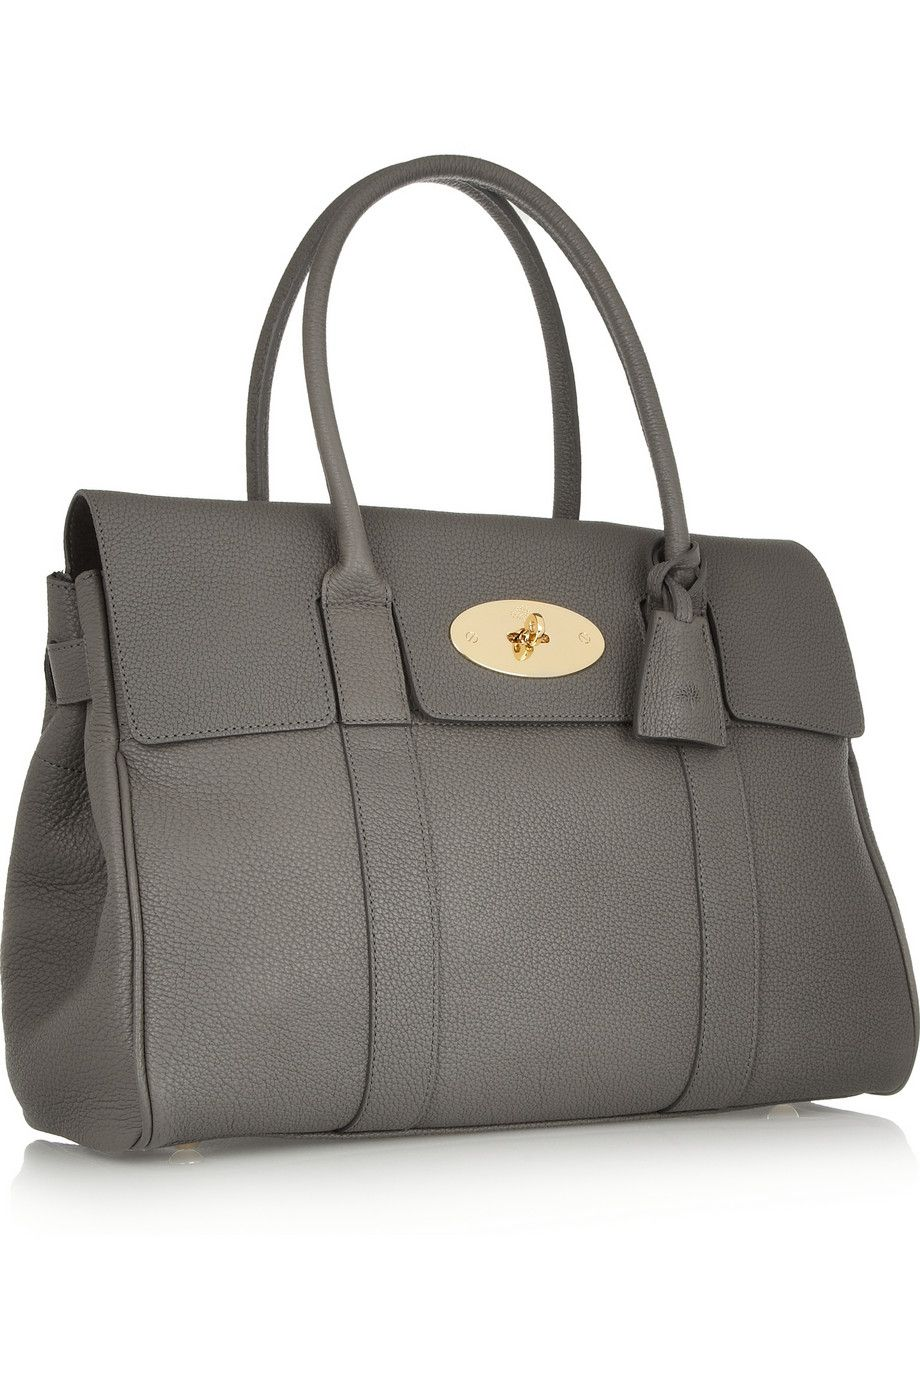 adaecc5266 Mulberry | The Bayswater textured-leather bag | NET-A-PORTER.COM ...